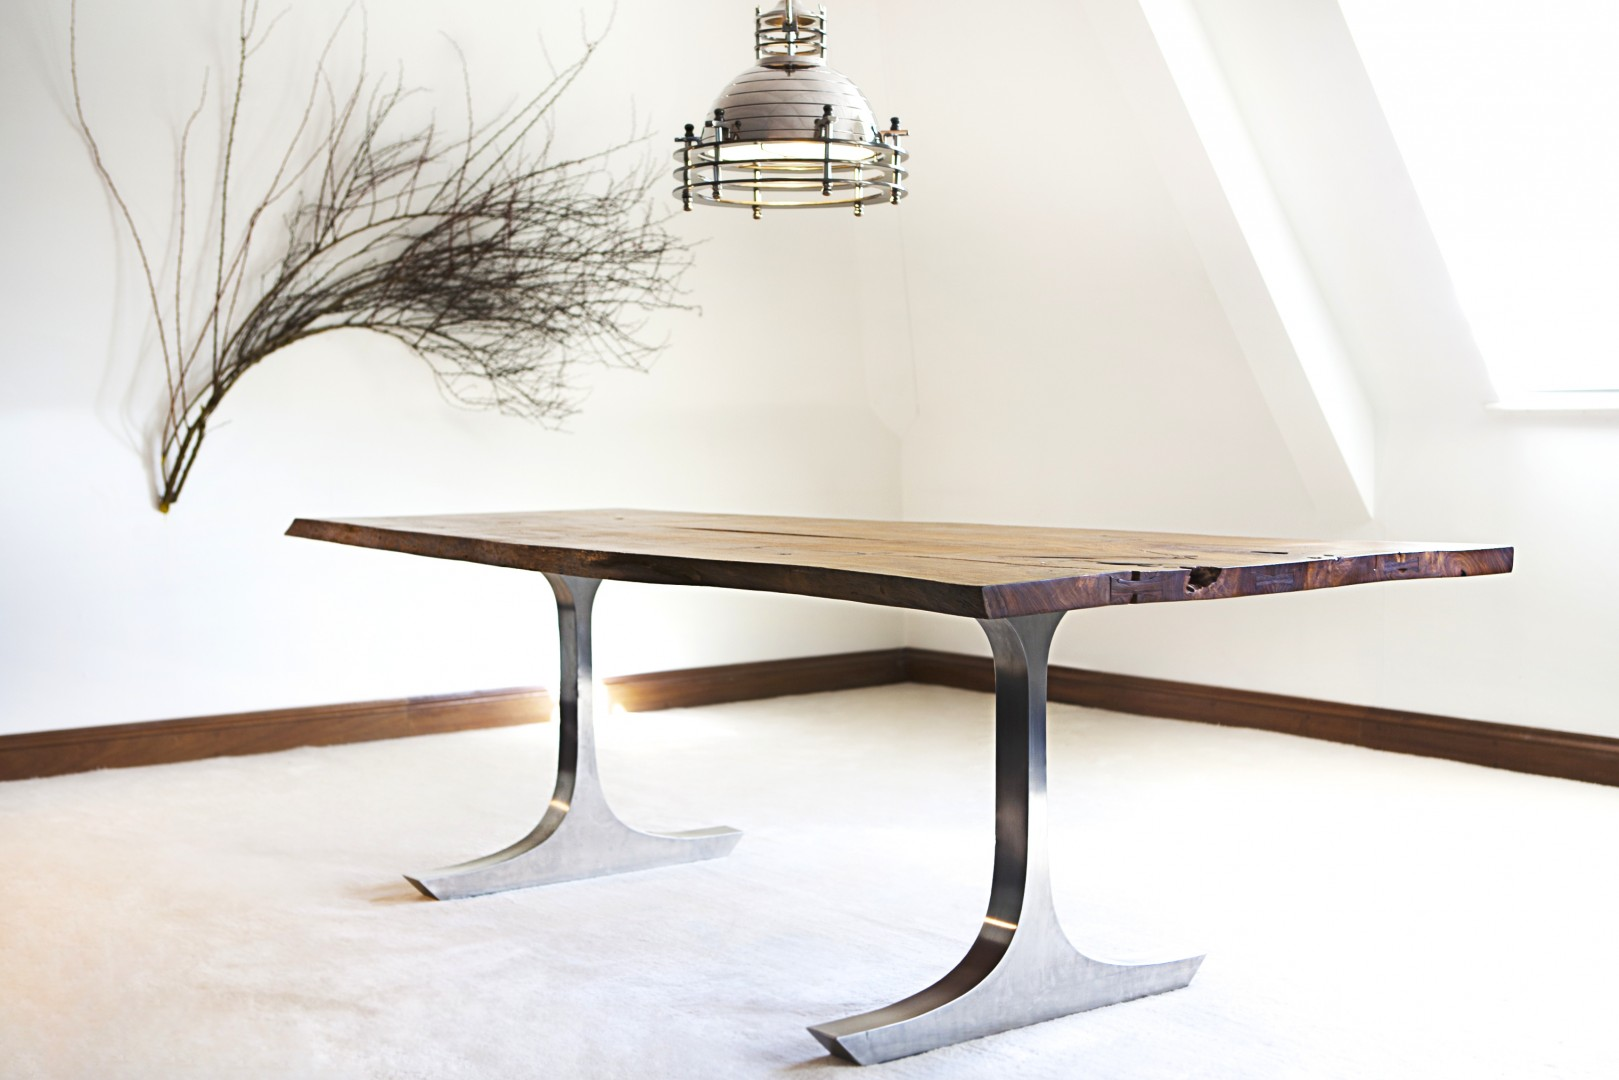 Neil Scott Bespoke Furniture The Anchor Dining Table